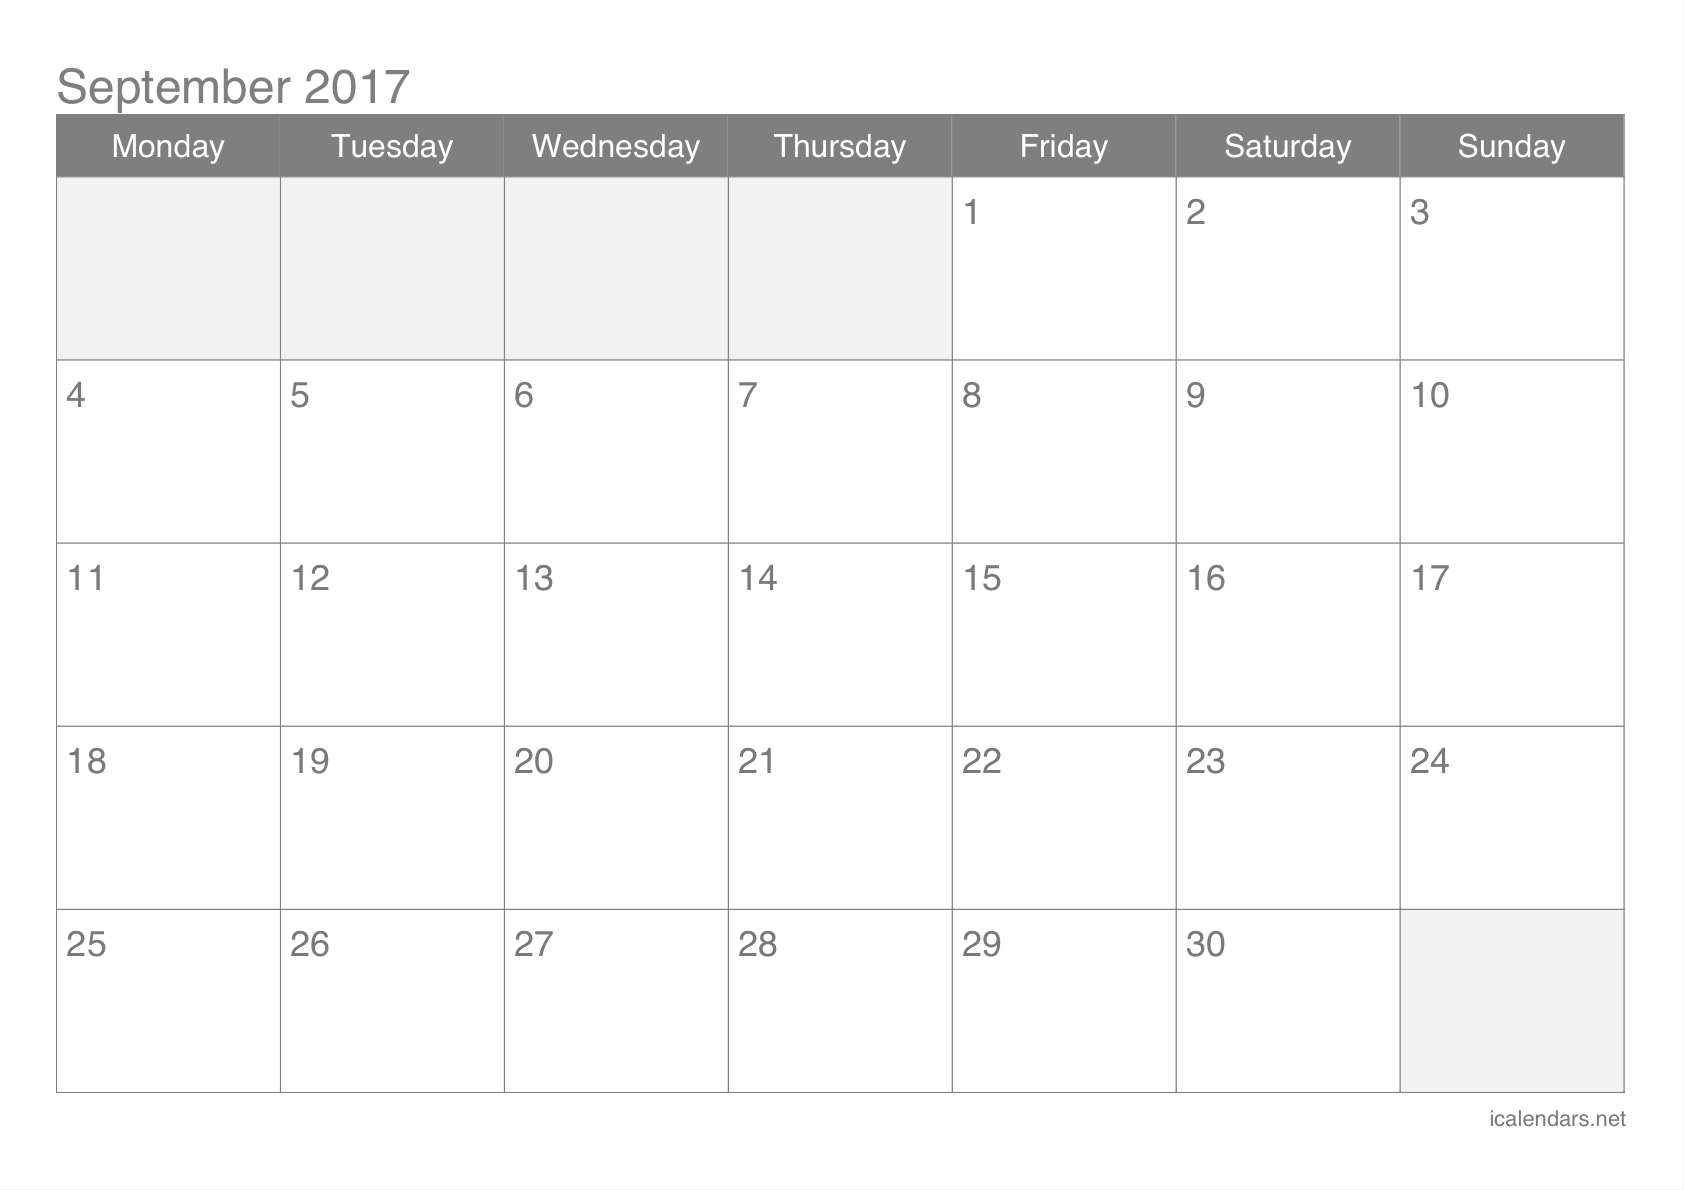 September 2017 Printable Calendar - icalendars.net